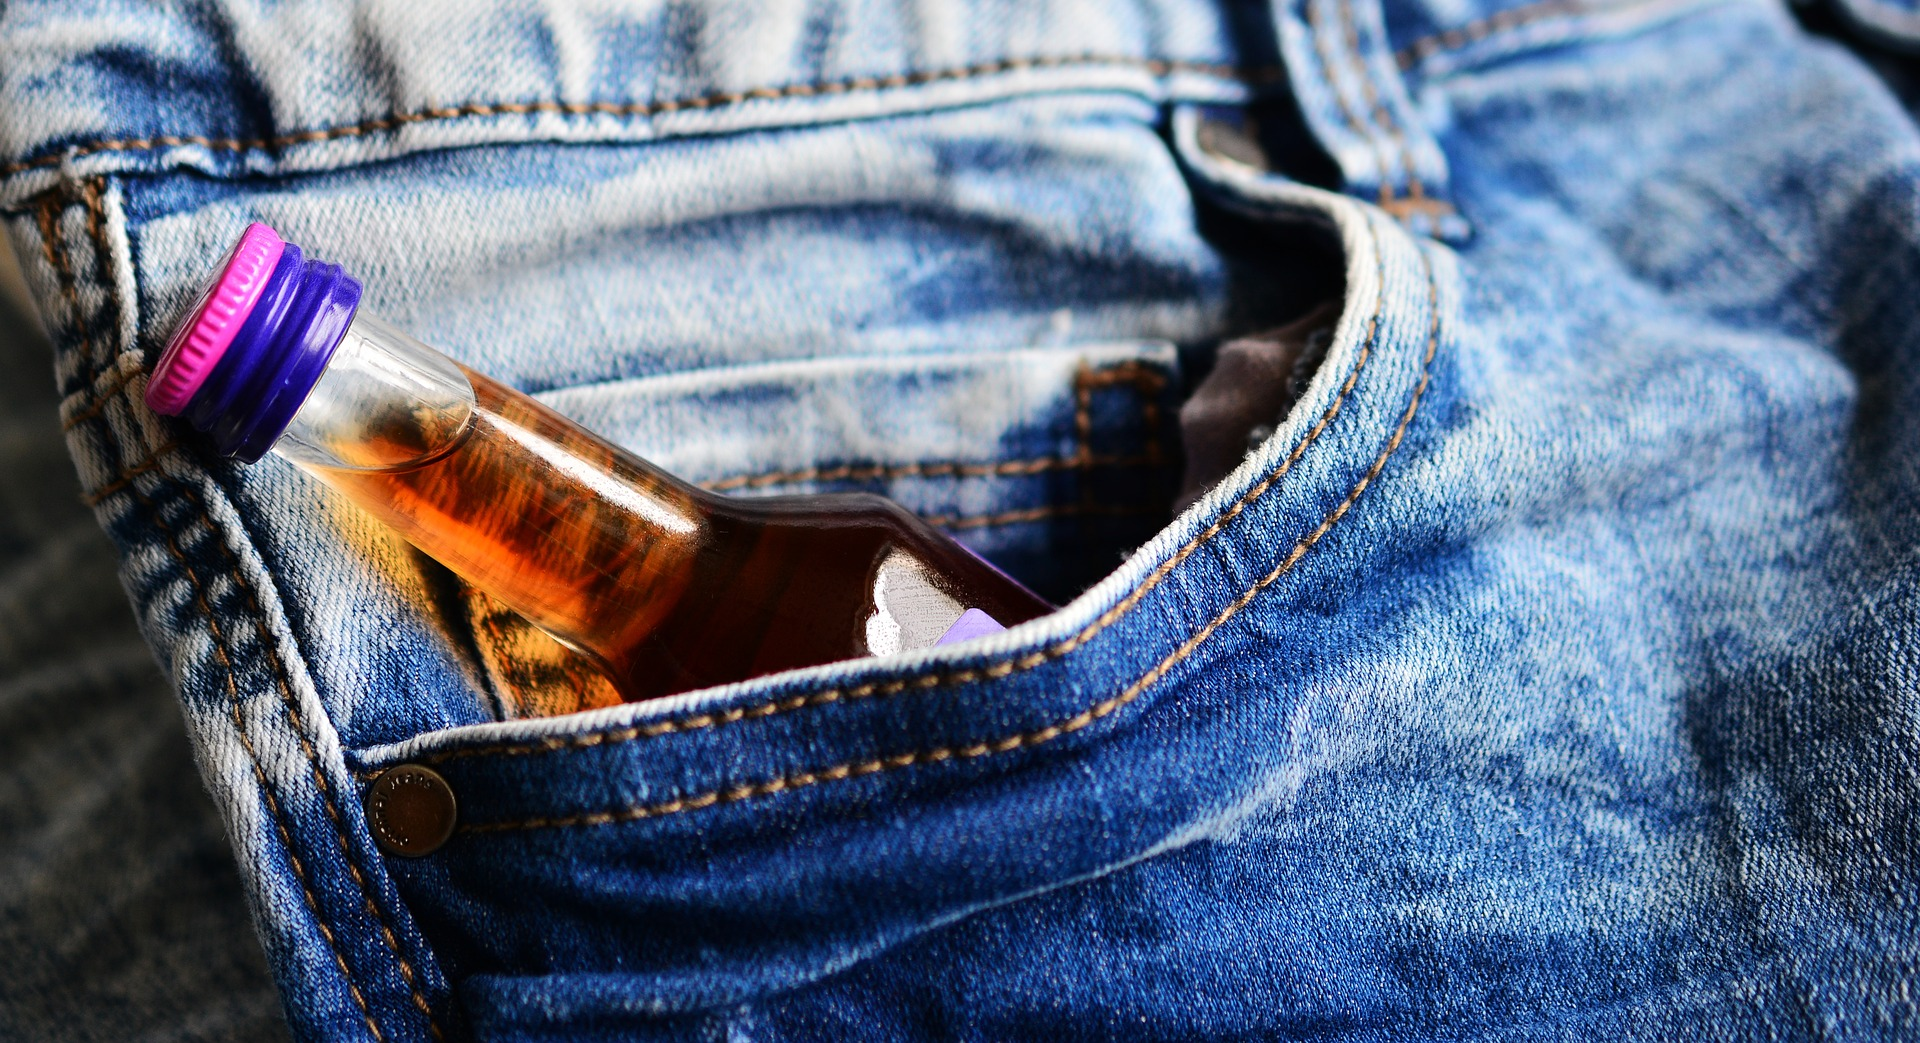 Miniature alcohol bottle in pocket of jeans